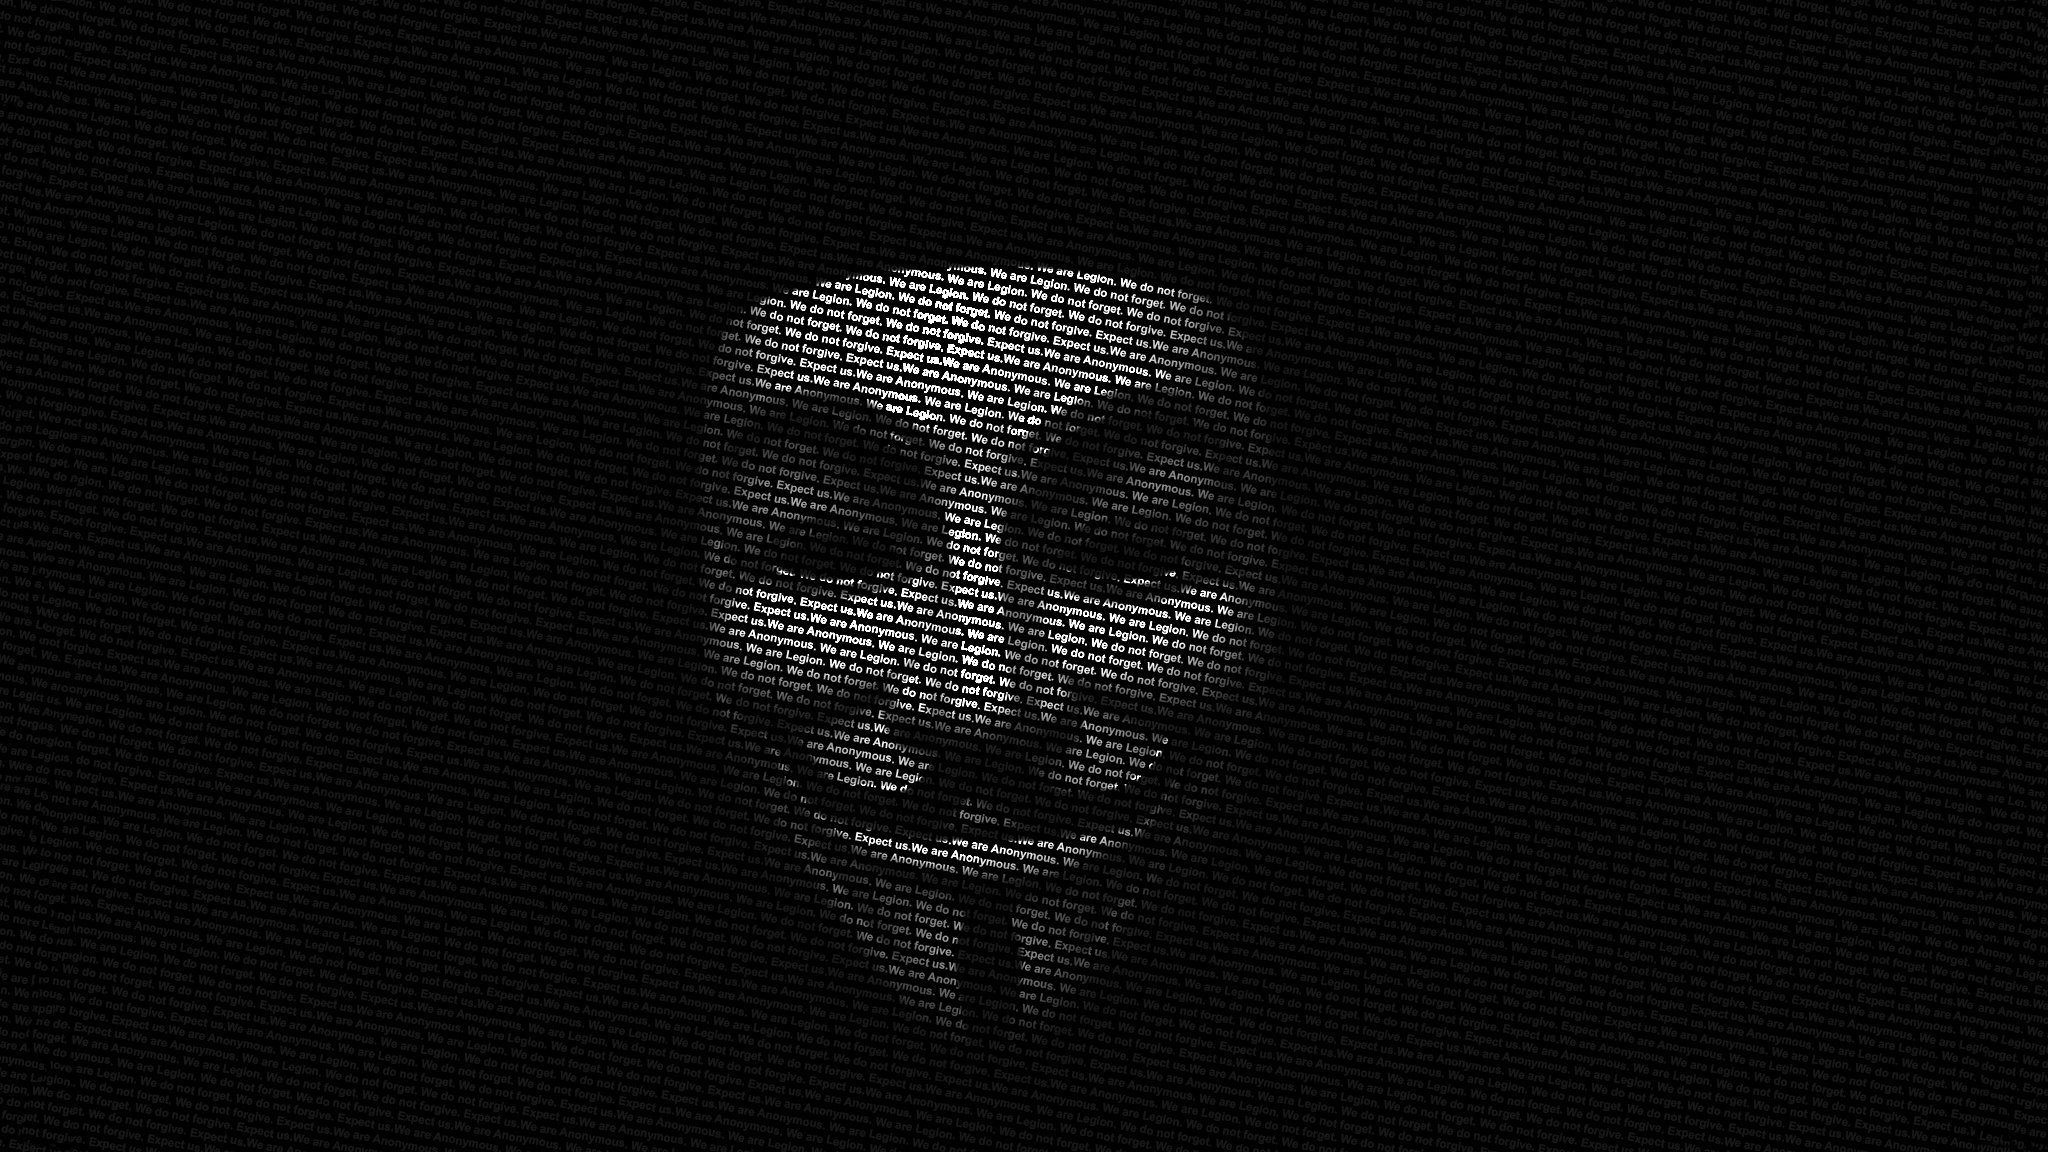 Anonymous HD Wallpapers  Backgrounds  Wallpaper  2048x1152